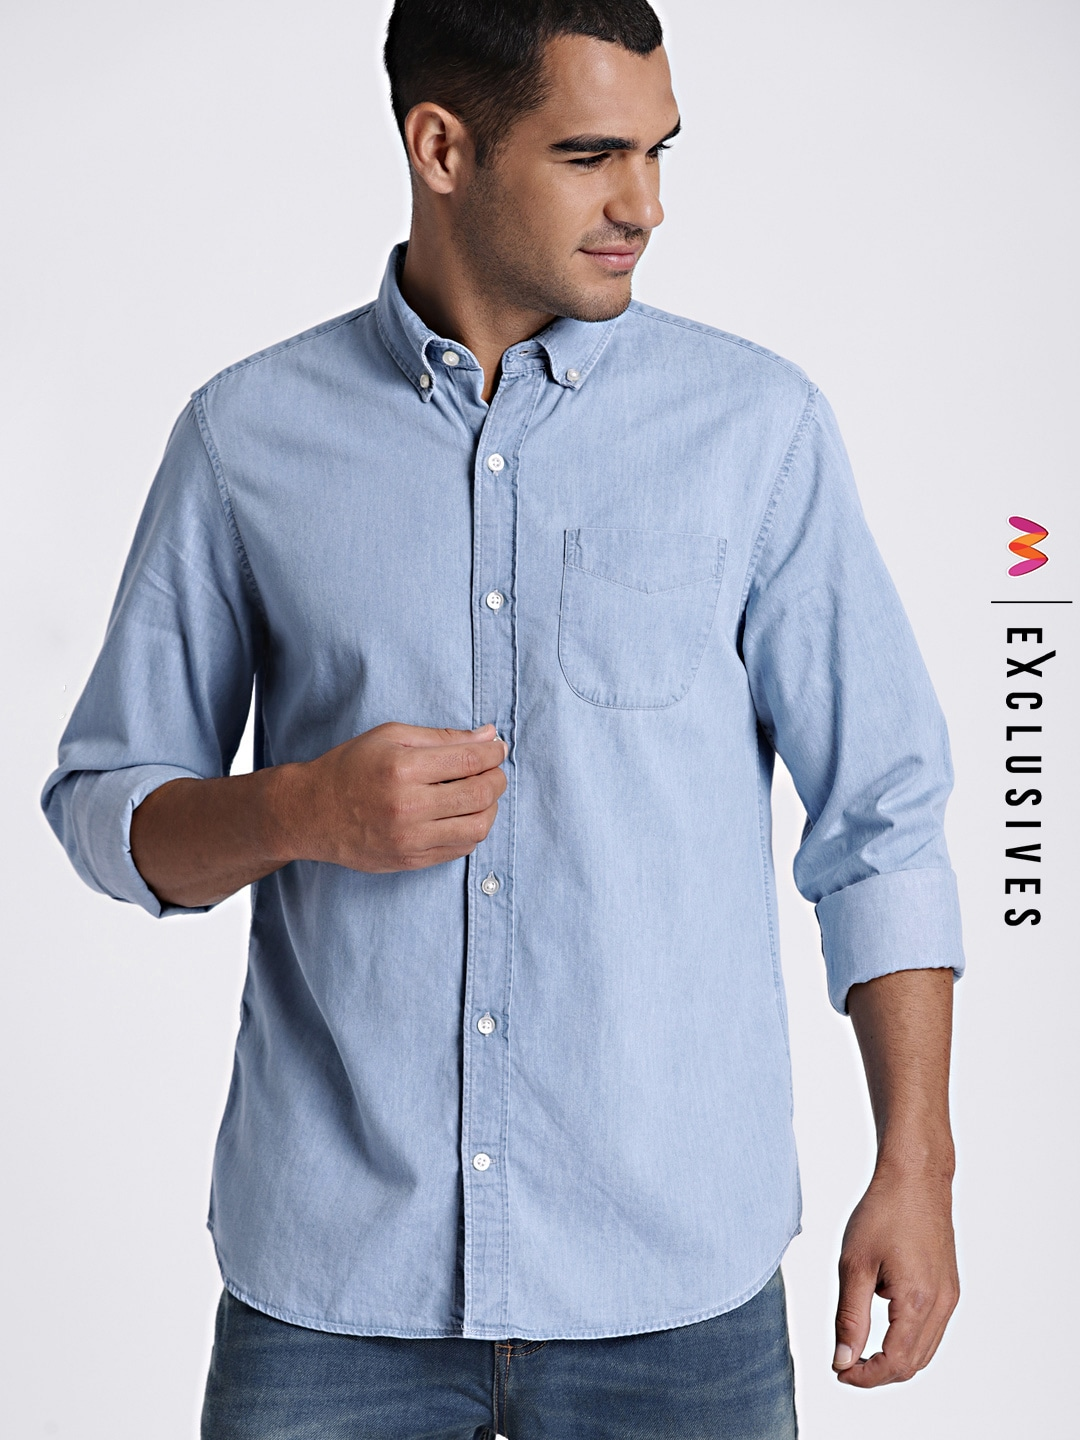 1f235995a Men Solid Blue Shirt - Buy Men Solid Blue Shirt online in India